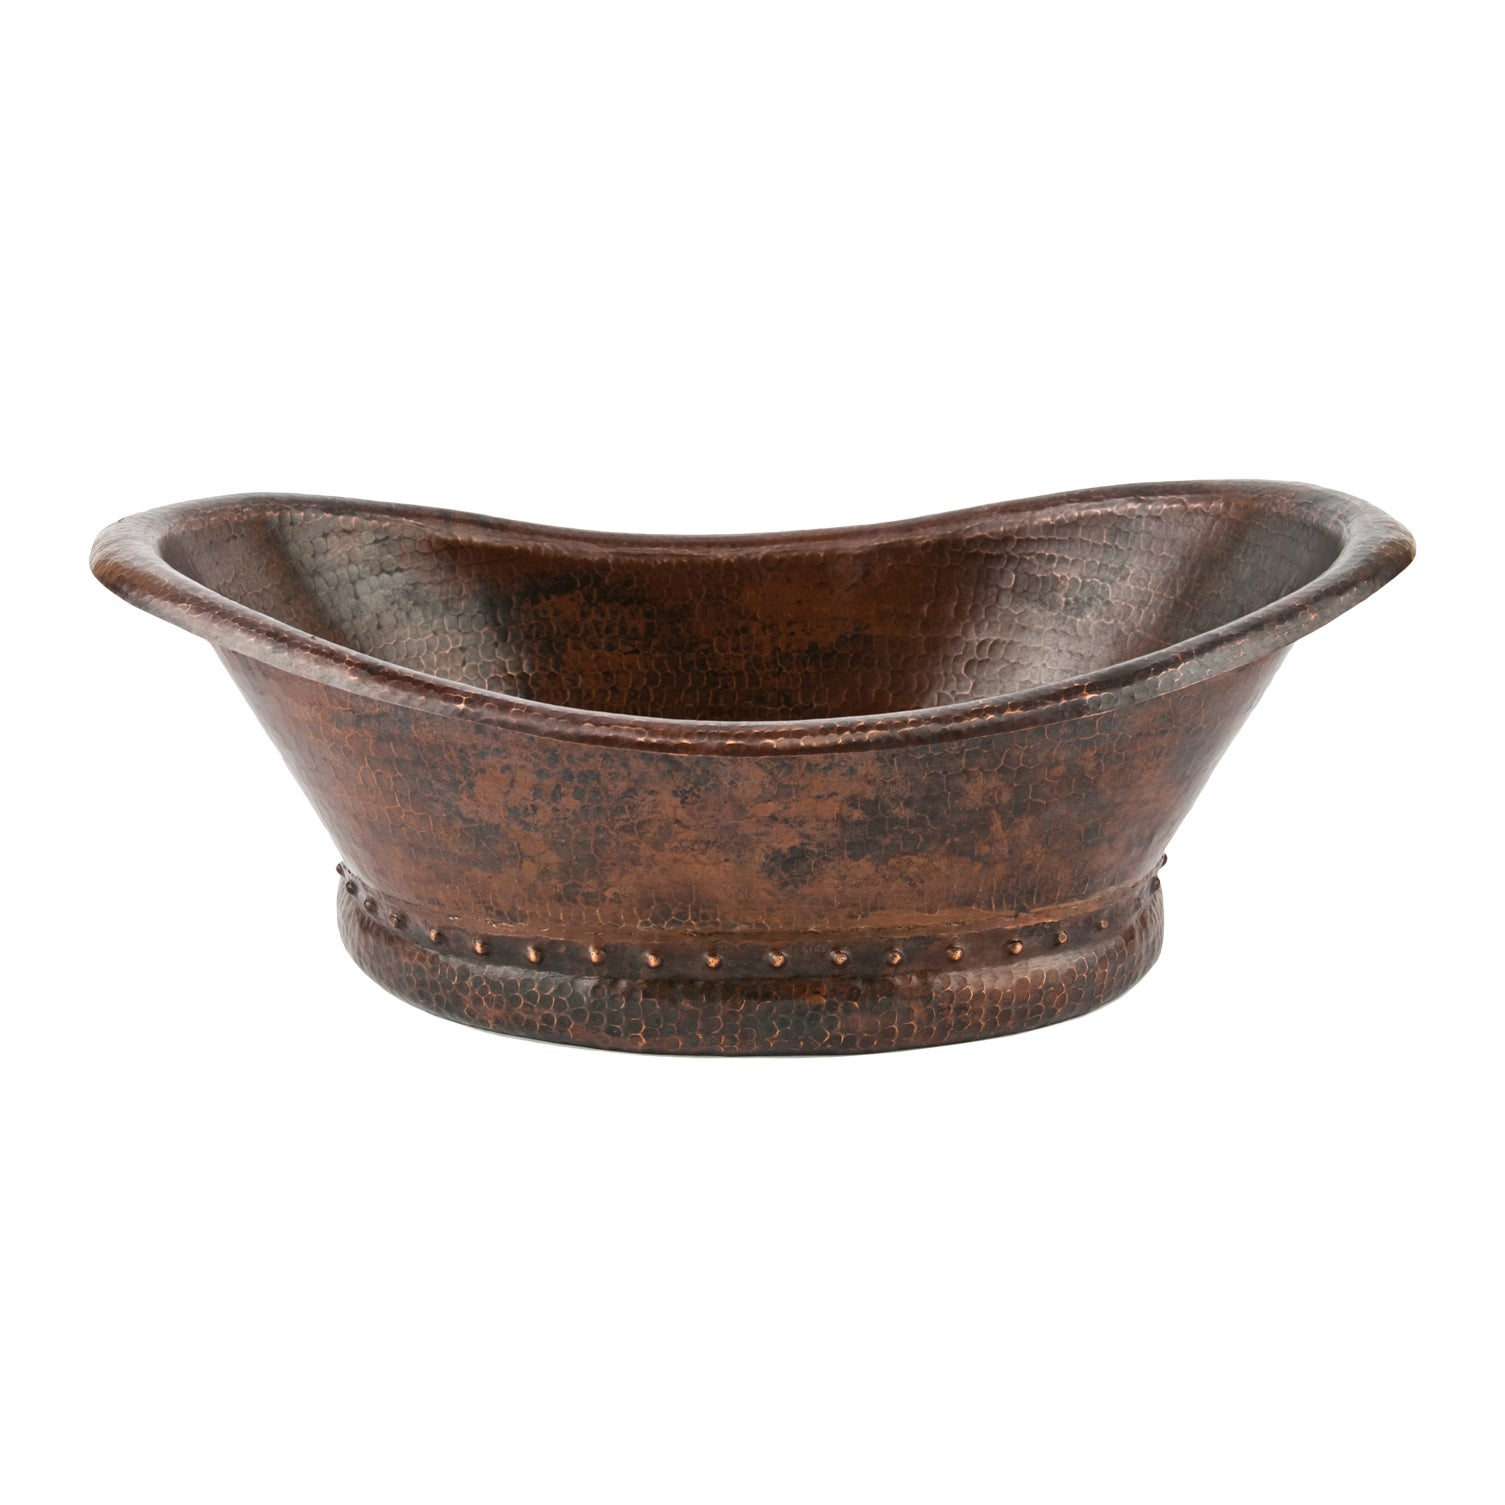 Premier Copper Products Bath Tub Vessel Hammered Copper Sink - Thumbnail 0